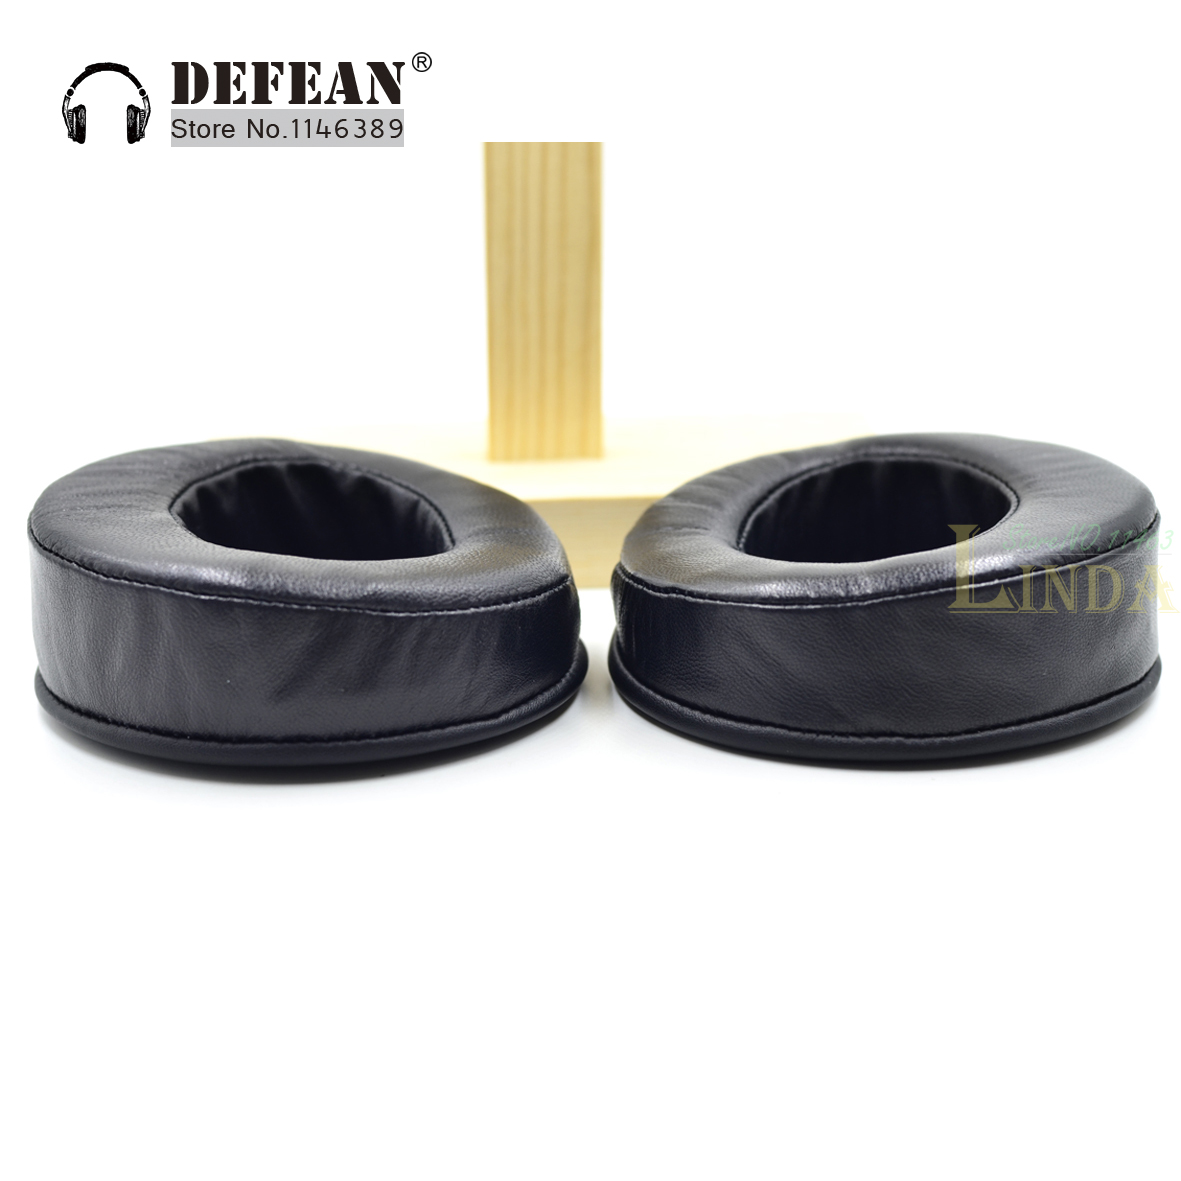 Angle Genuine Leather cushion ear pads foam ear pads cover for Hifiman HE Series Headphones headset